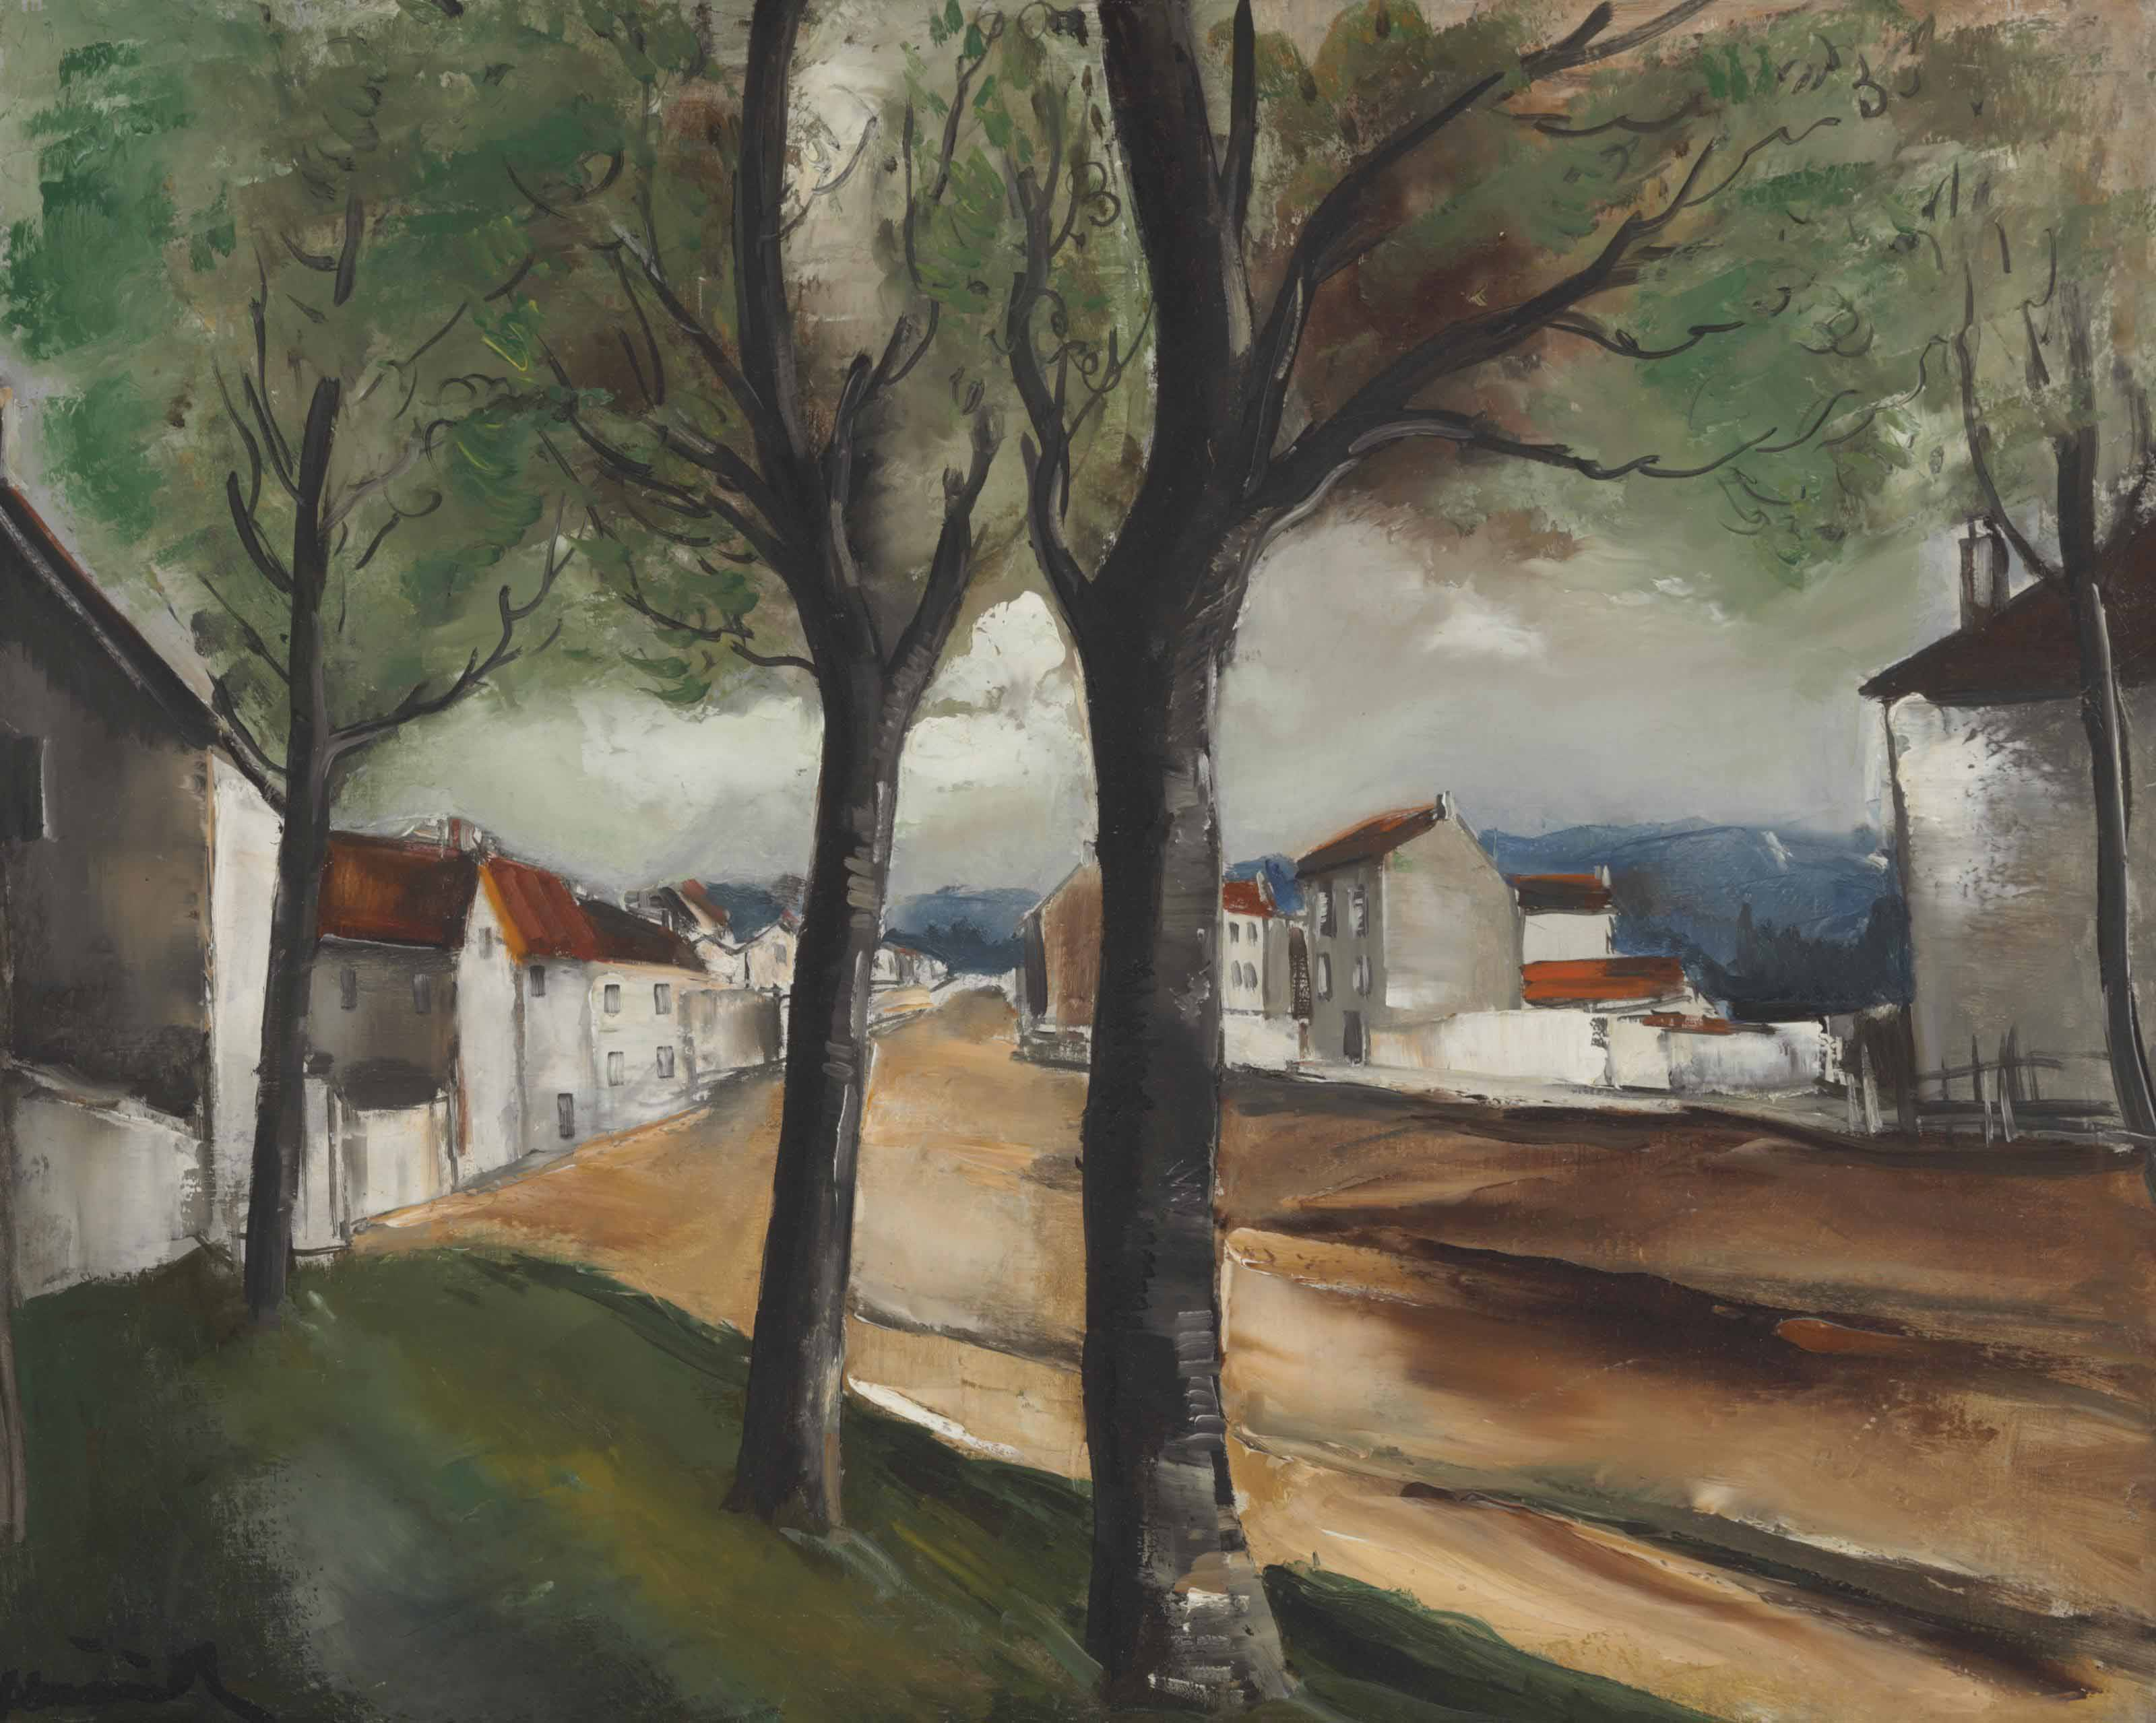 https://www.christies.com/img/LotImages/2013/NYR/2013_NYR_02784_0280_000(maurice_de_vlaminck_la_route).jpg